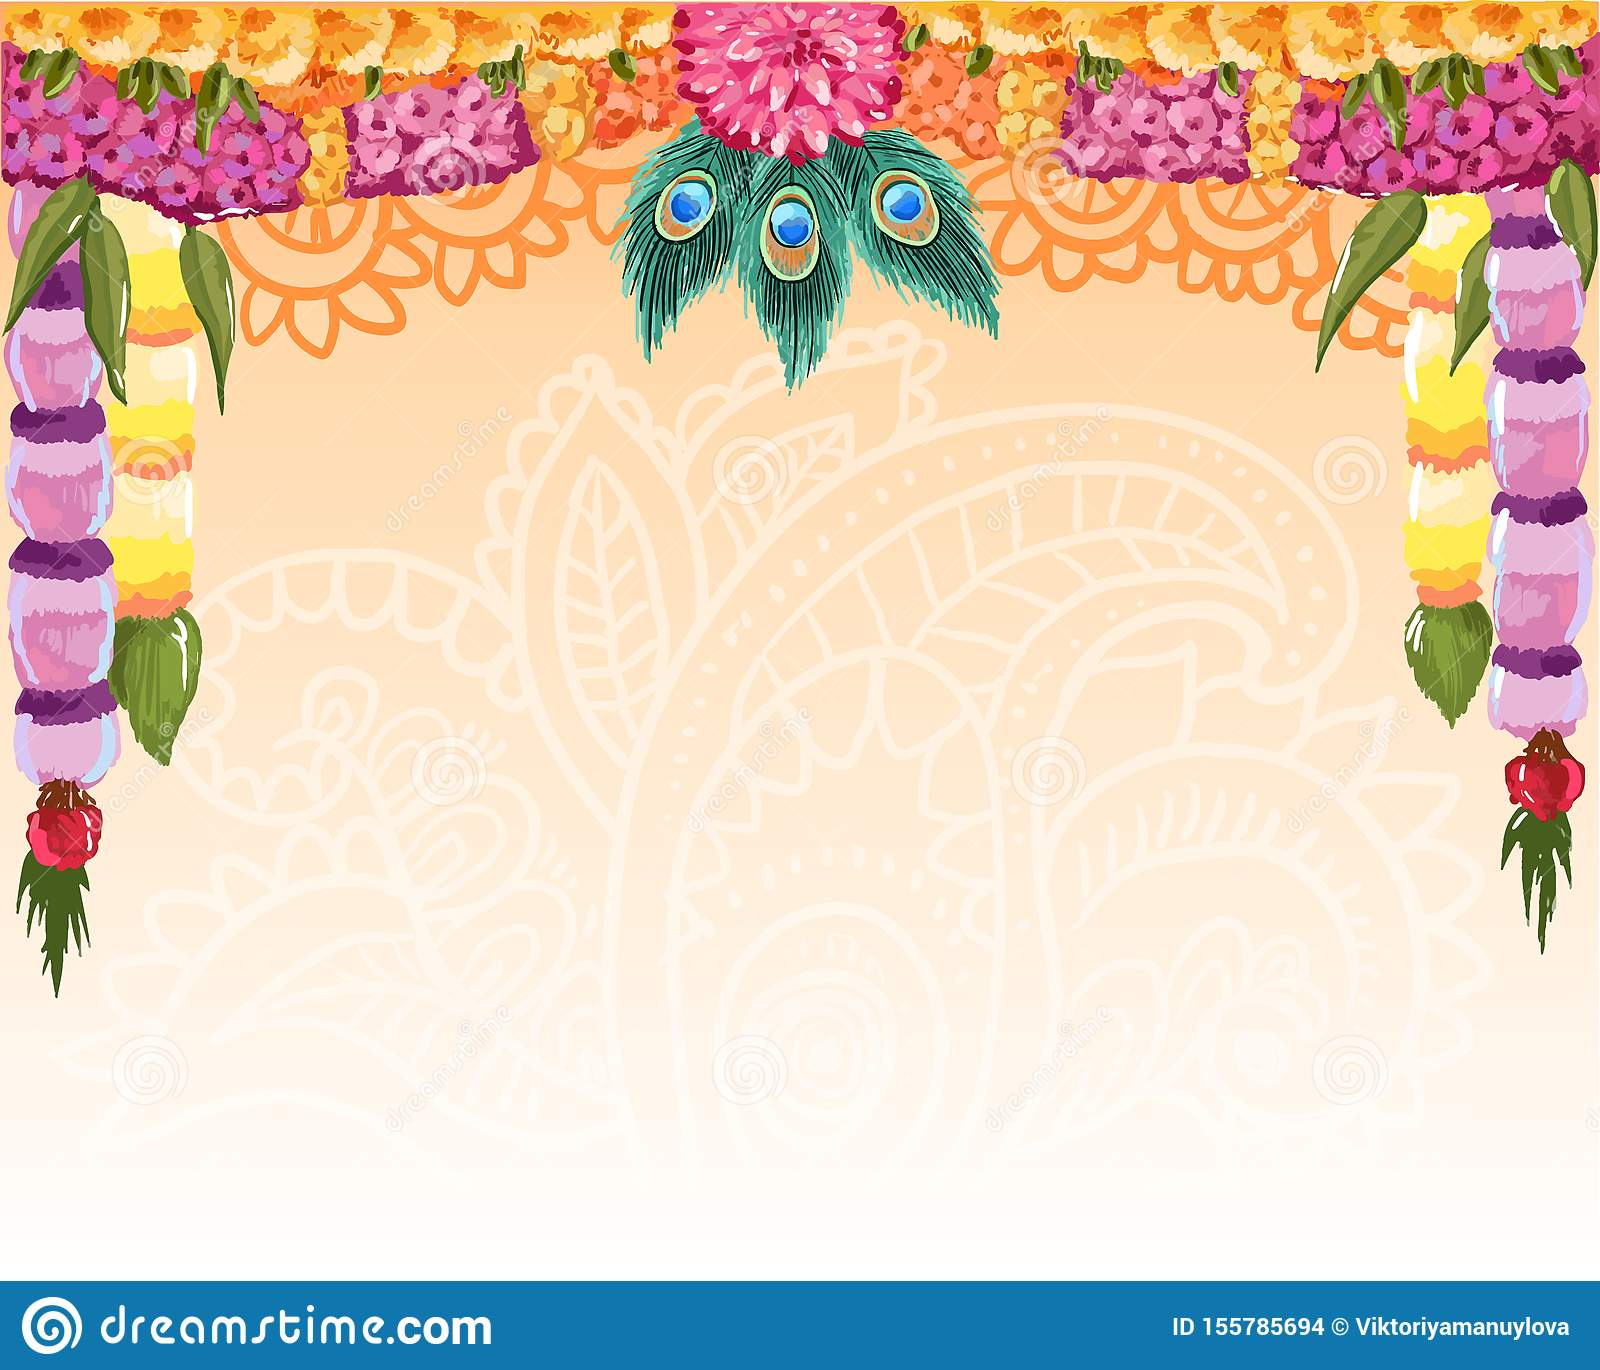 Indian garland background, great design with place for text. Vector card, banner